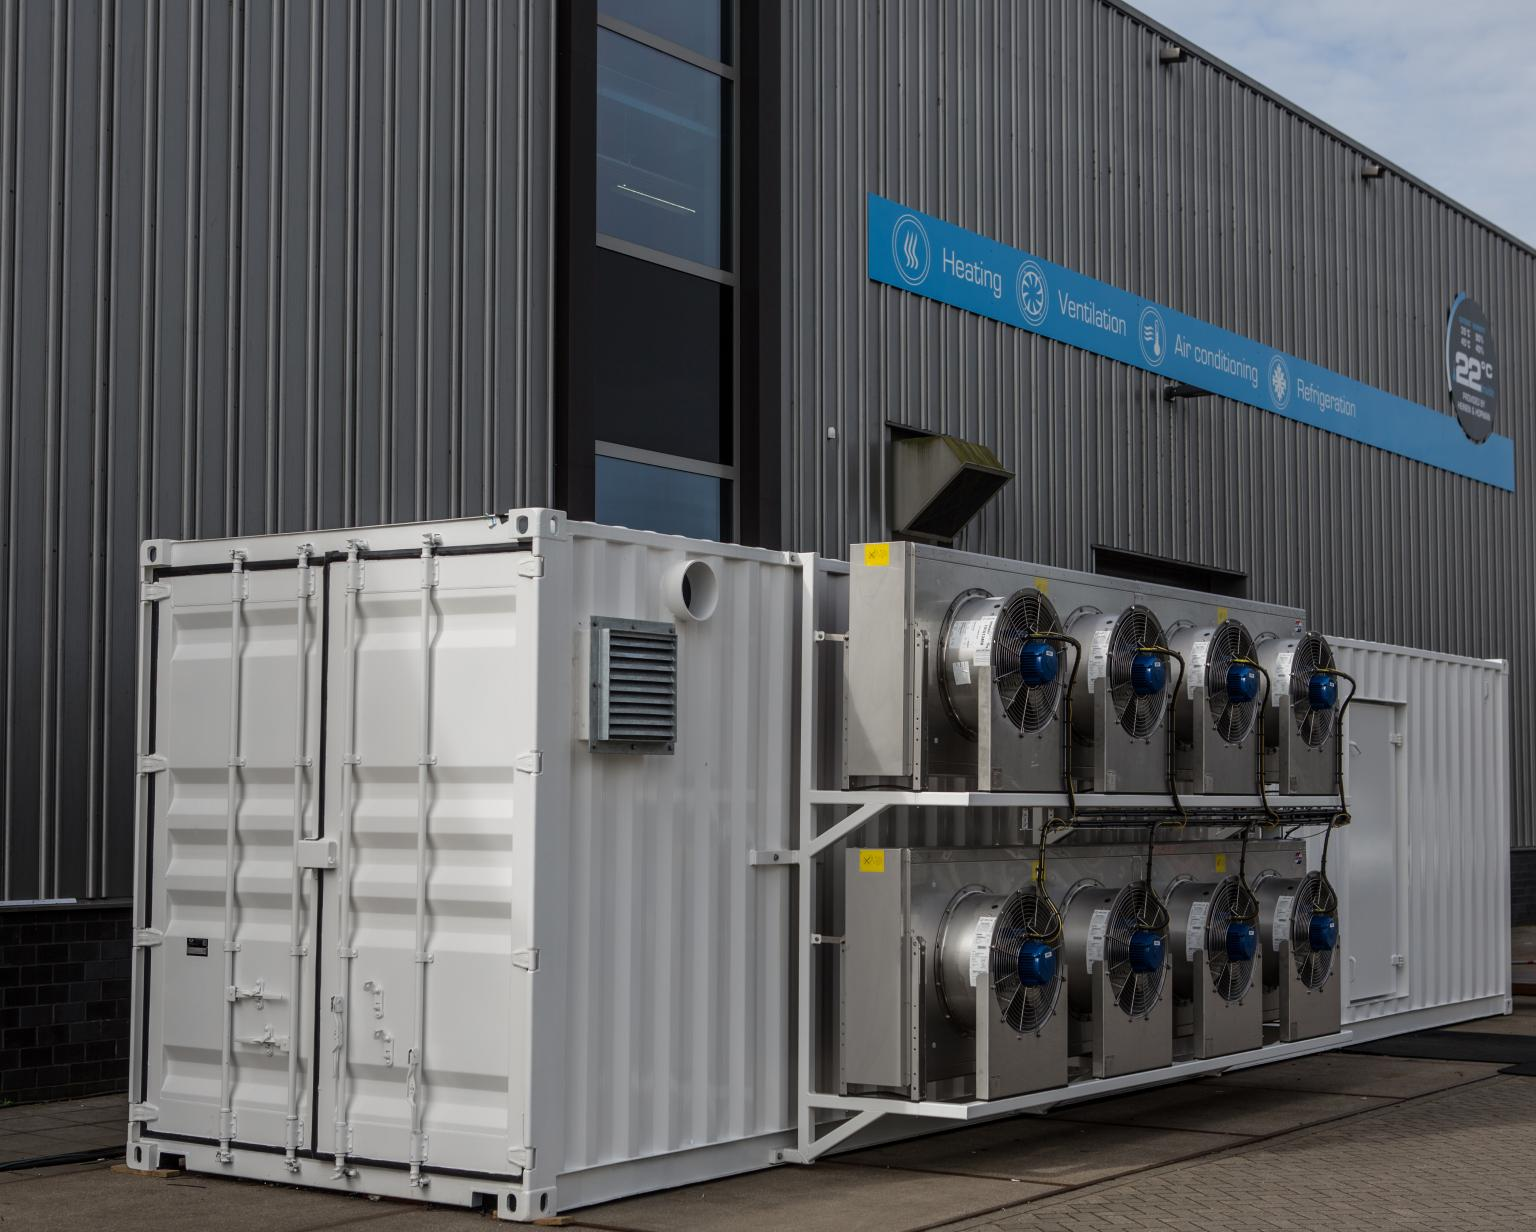 Each containerised fan room is custom-designed to meet the specific user's requirements